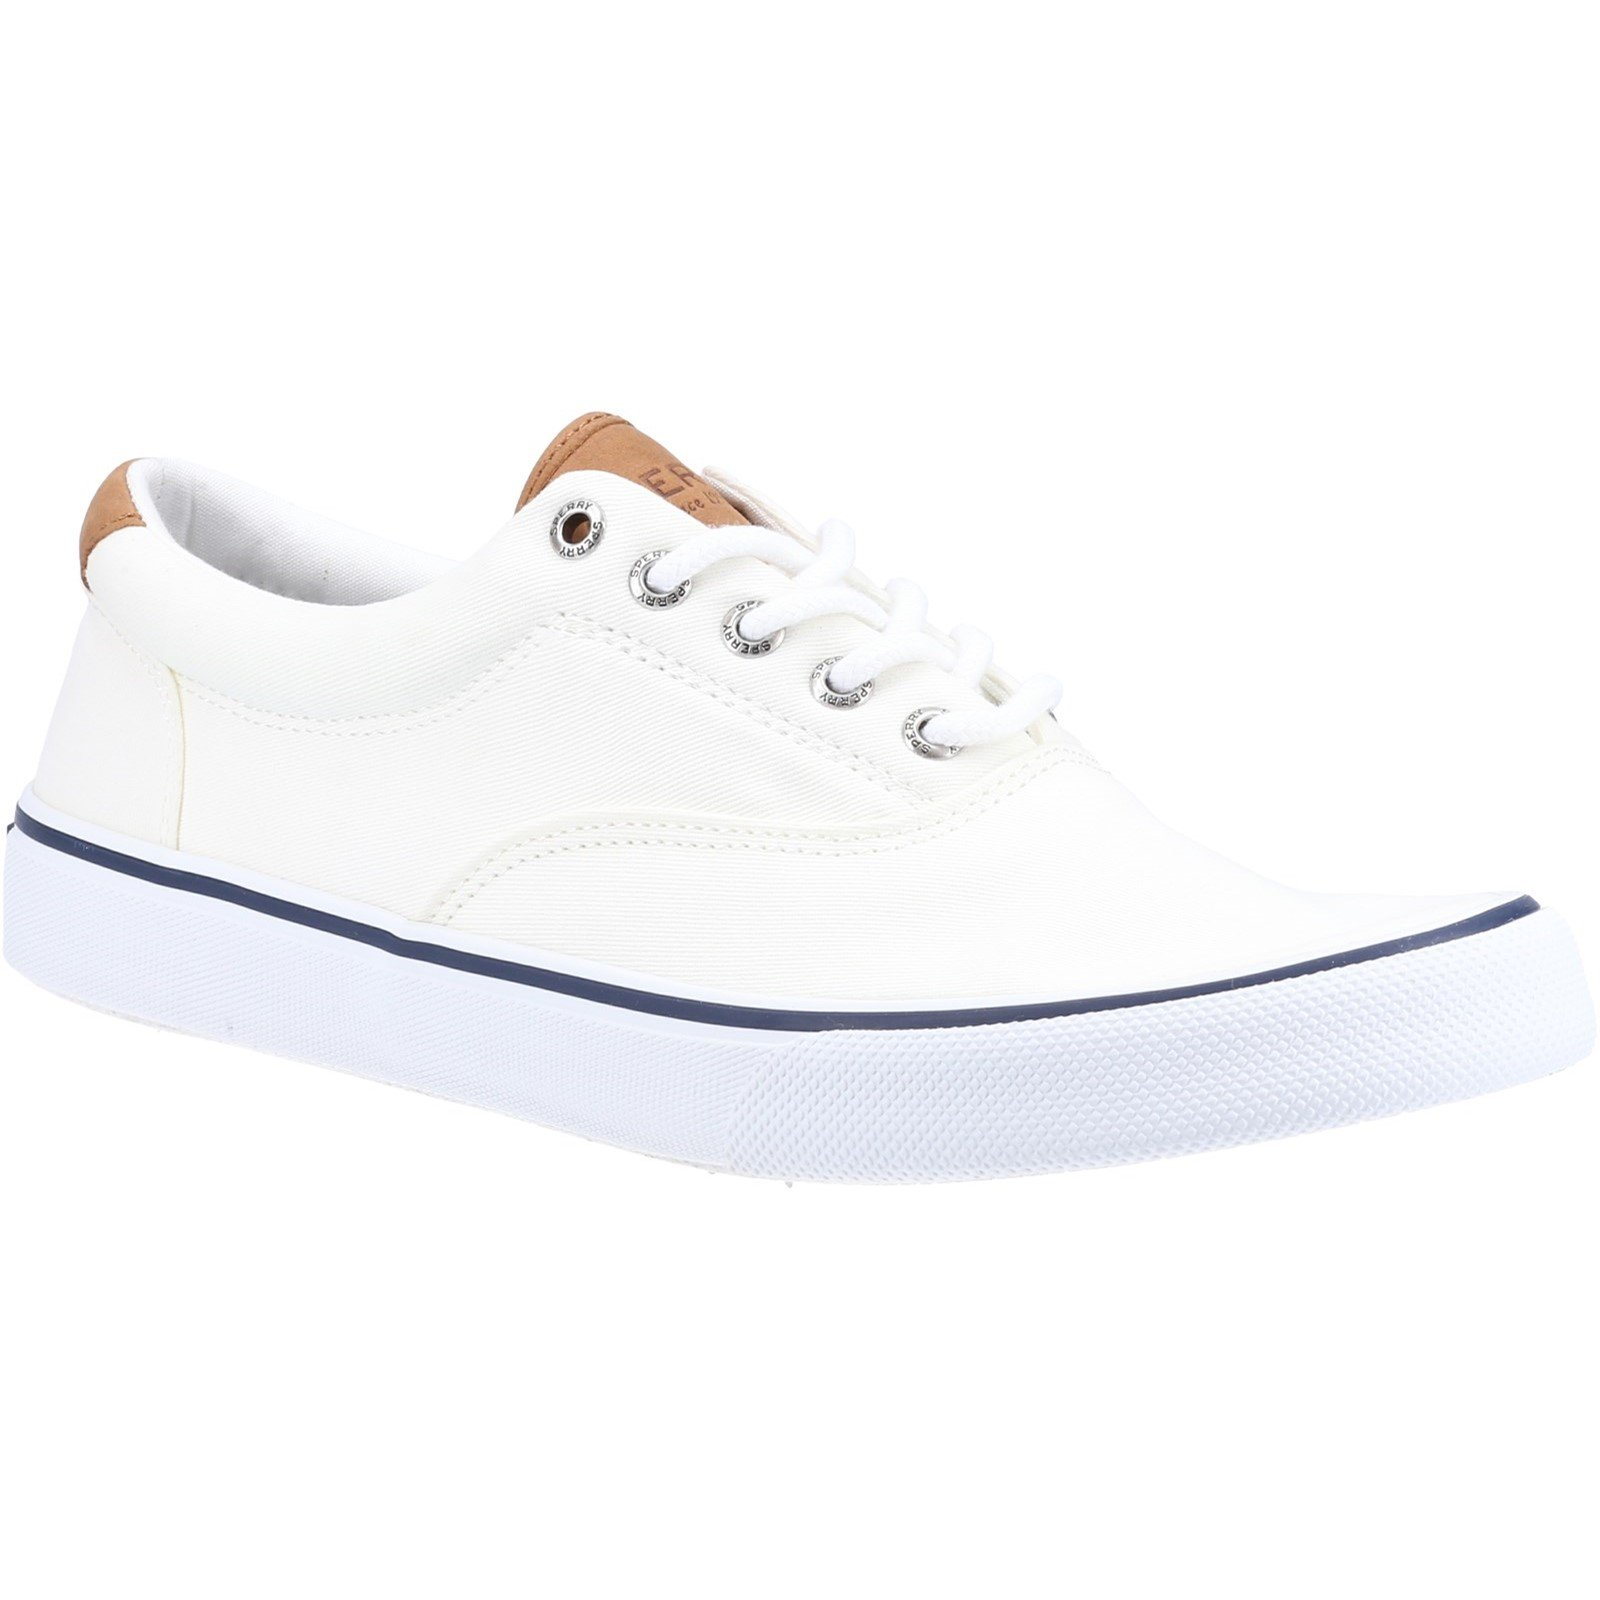 Sperry Men's Striper II CVO Canvas Trainers Various Colours 32397 - Salt Washed White 13